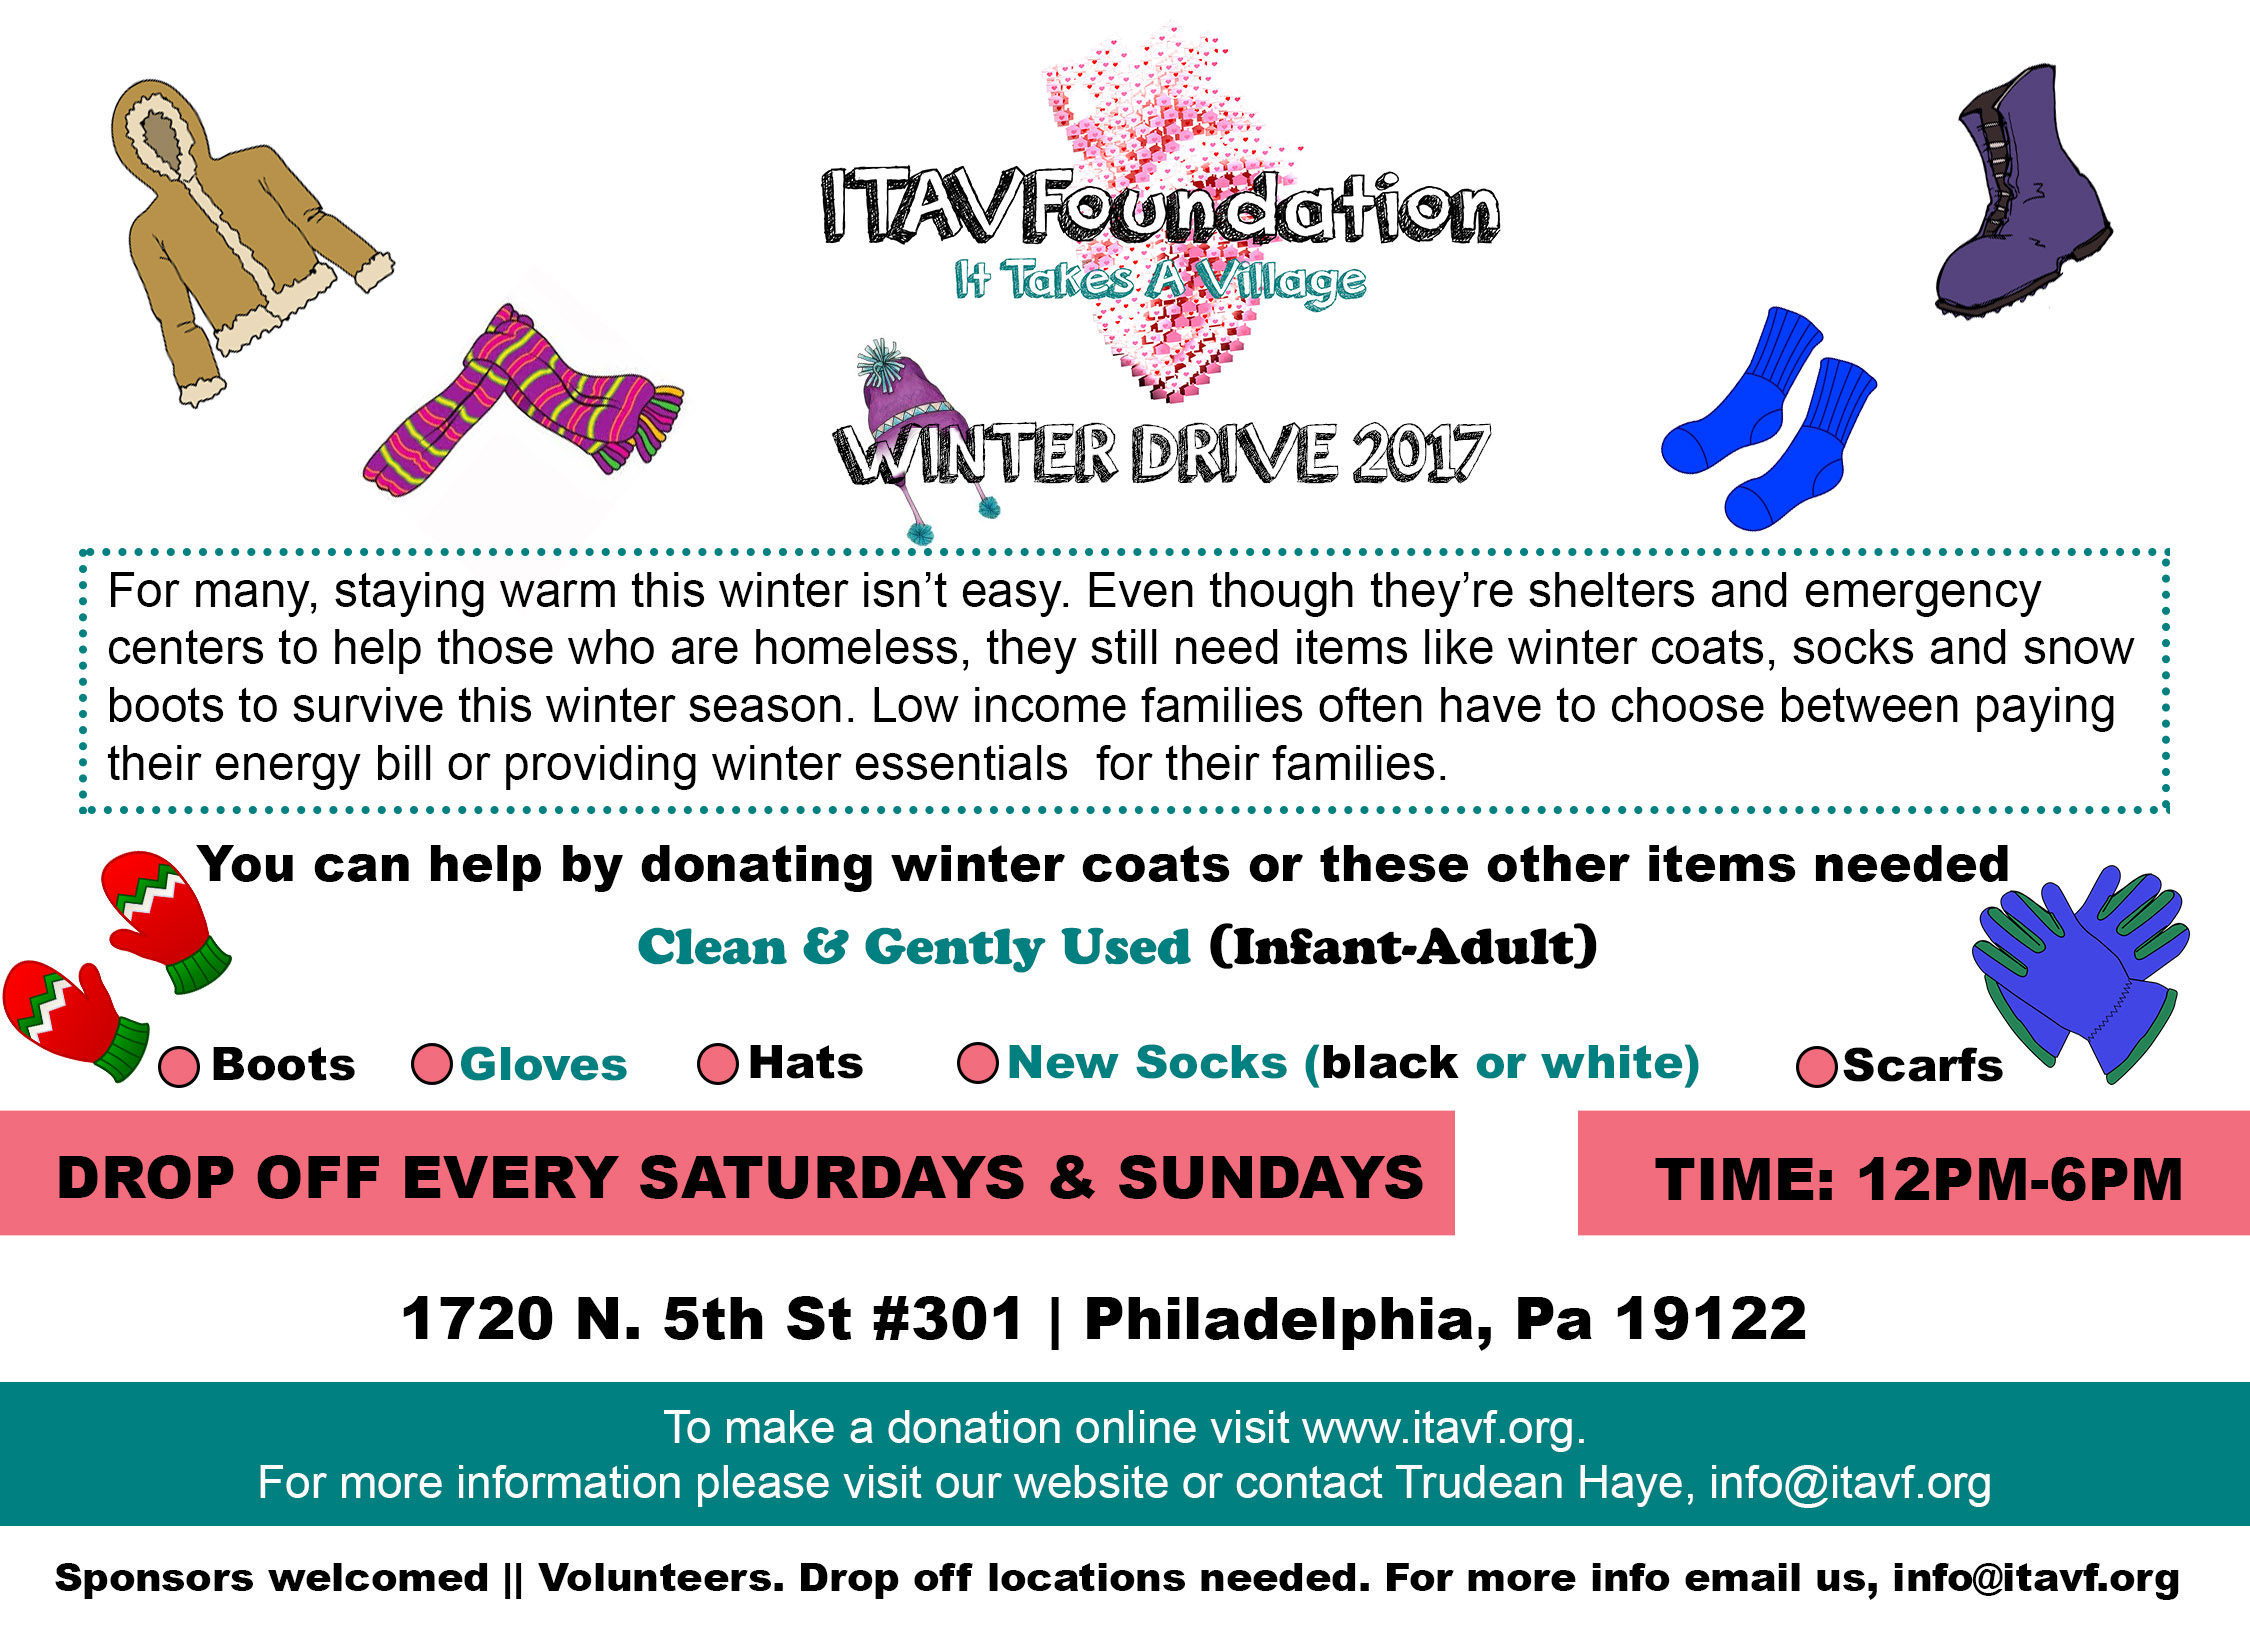 ITAVFoundation Winter Drive